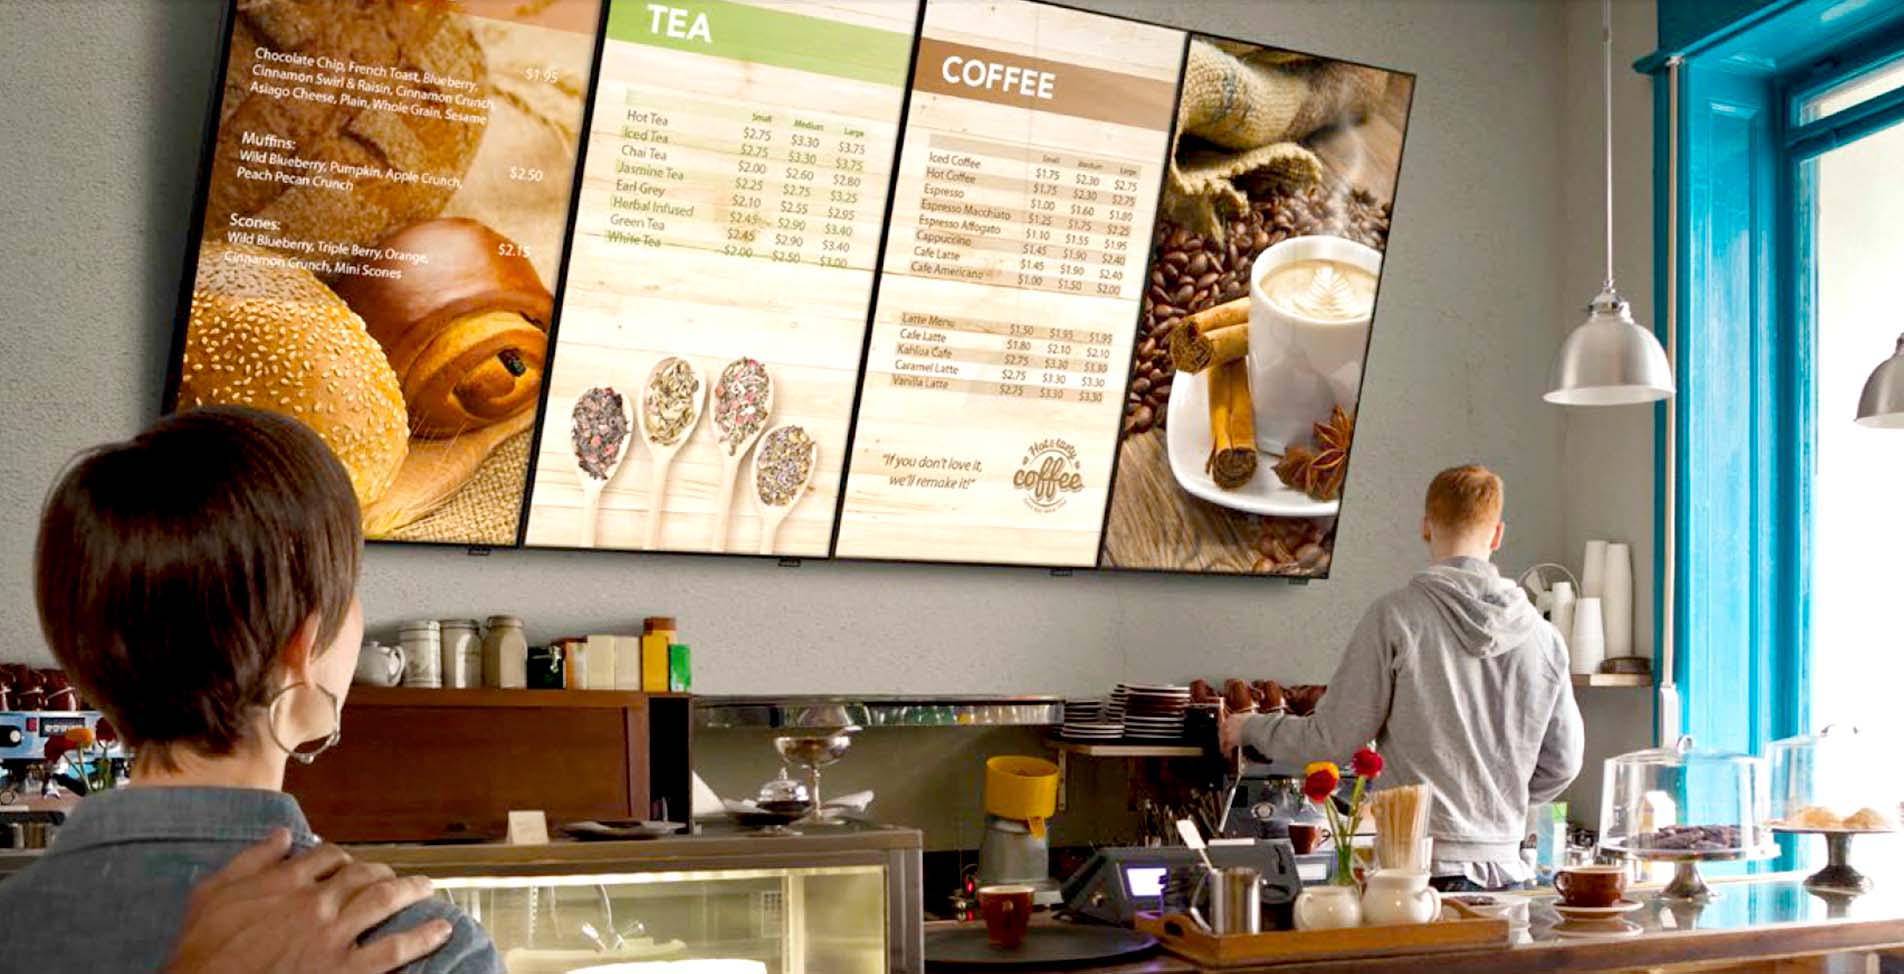 What is the importance of digital menu boards?